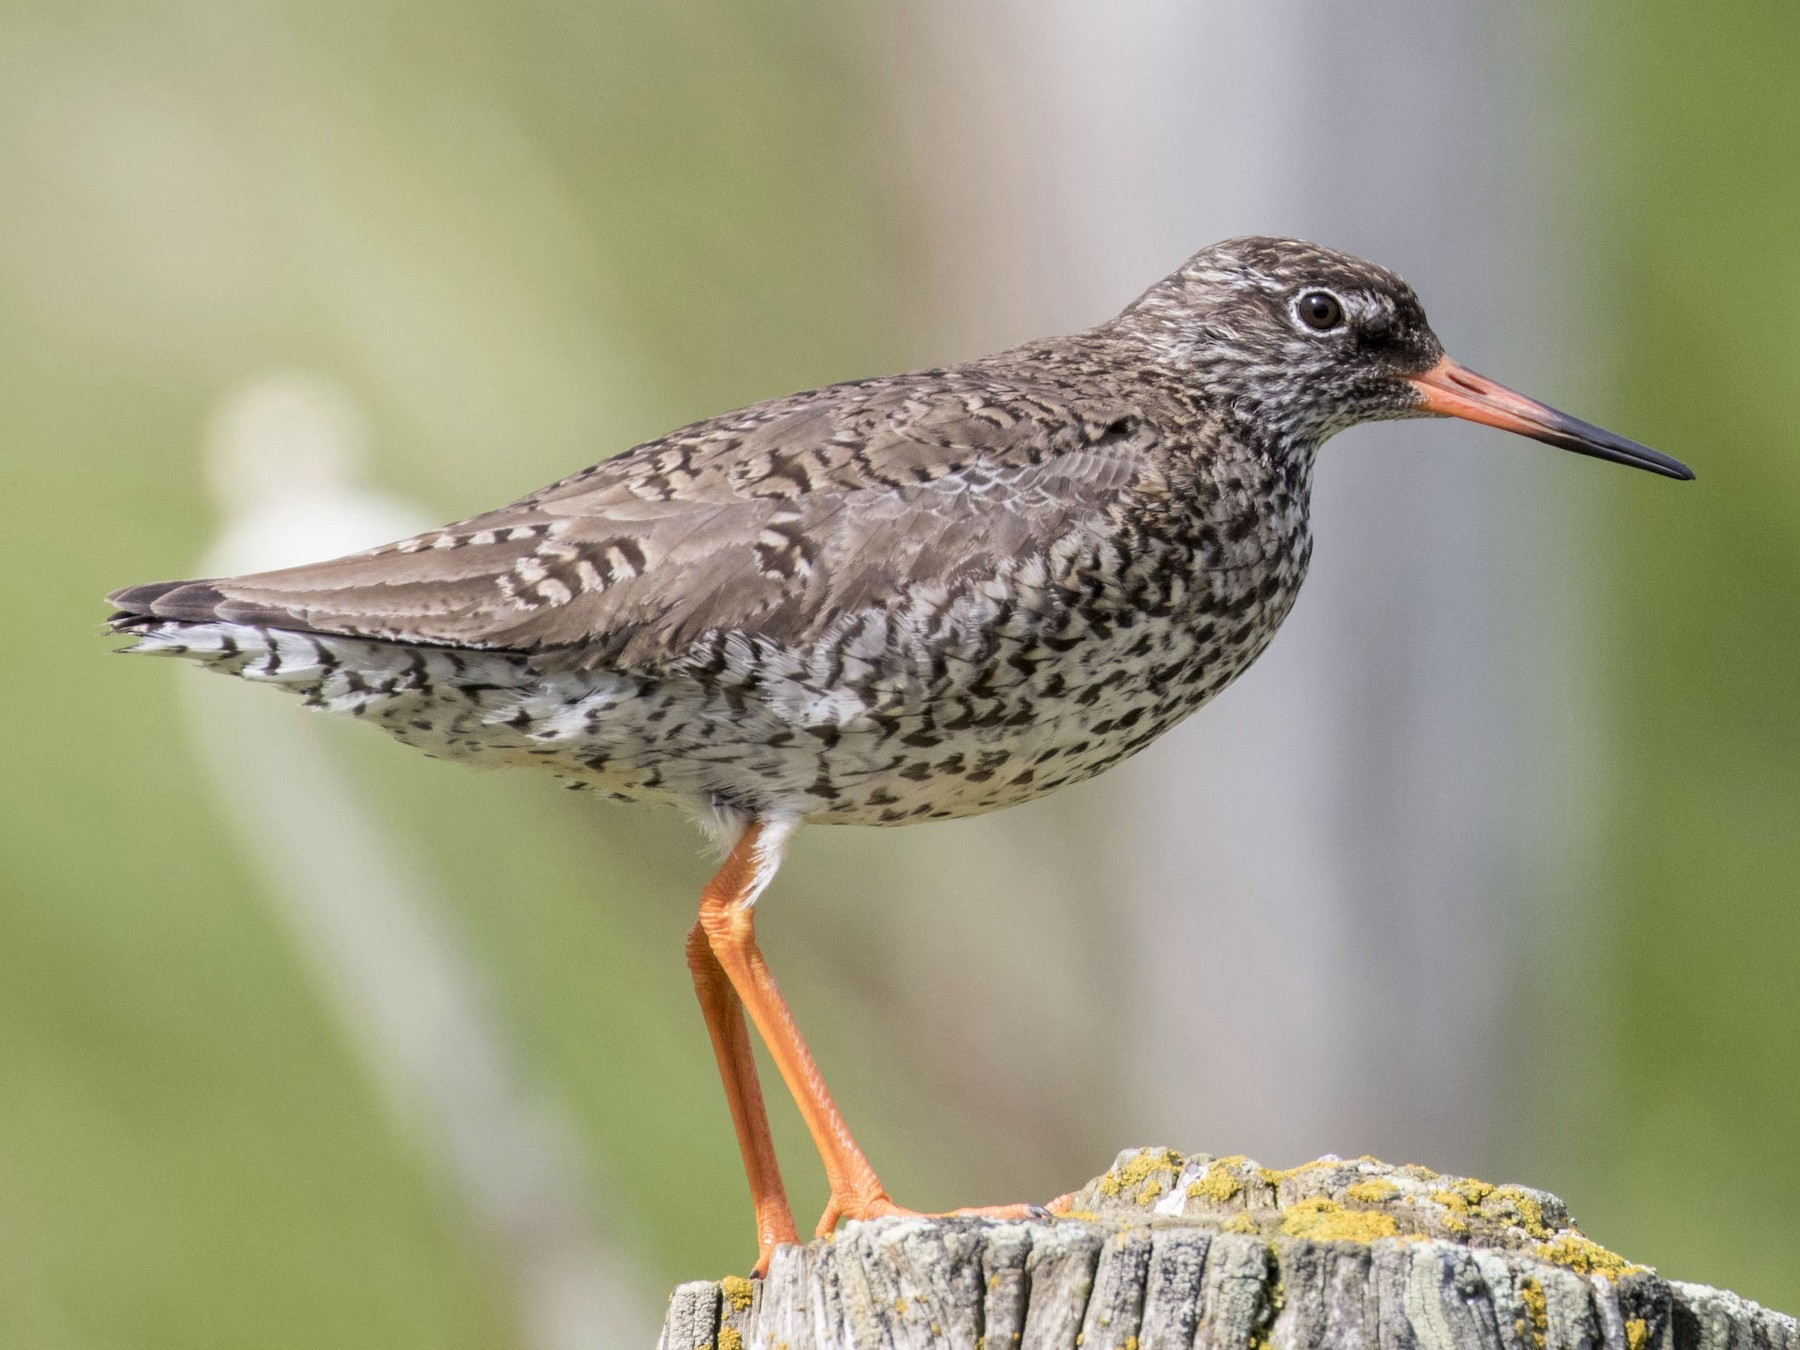 Common Redshank - Mouser Williams